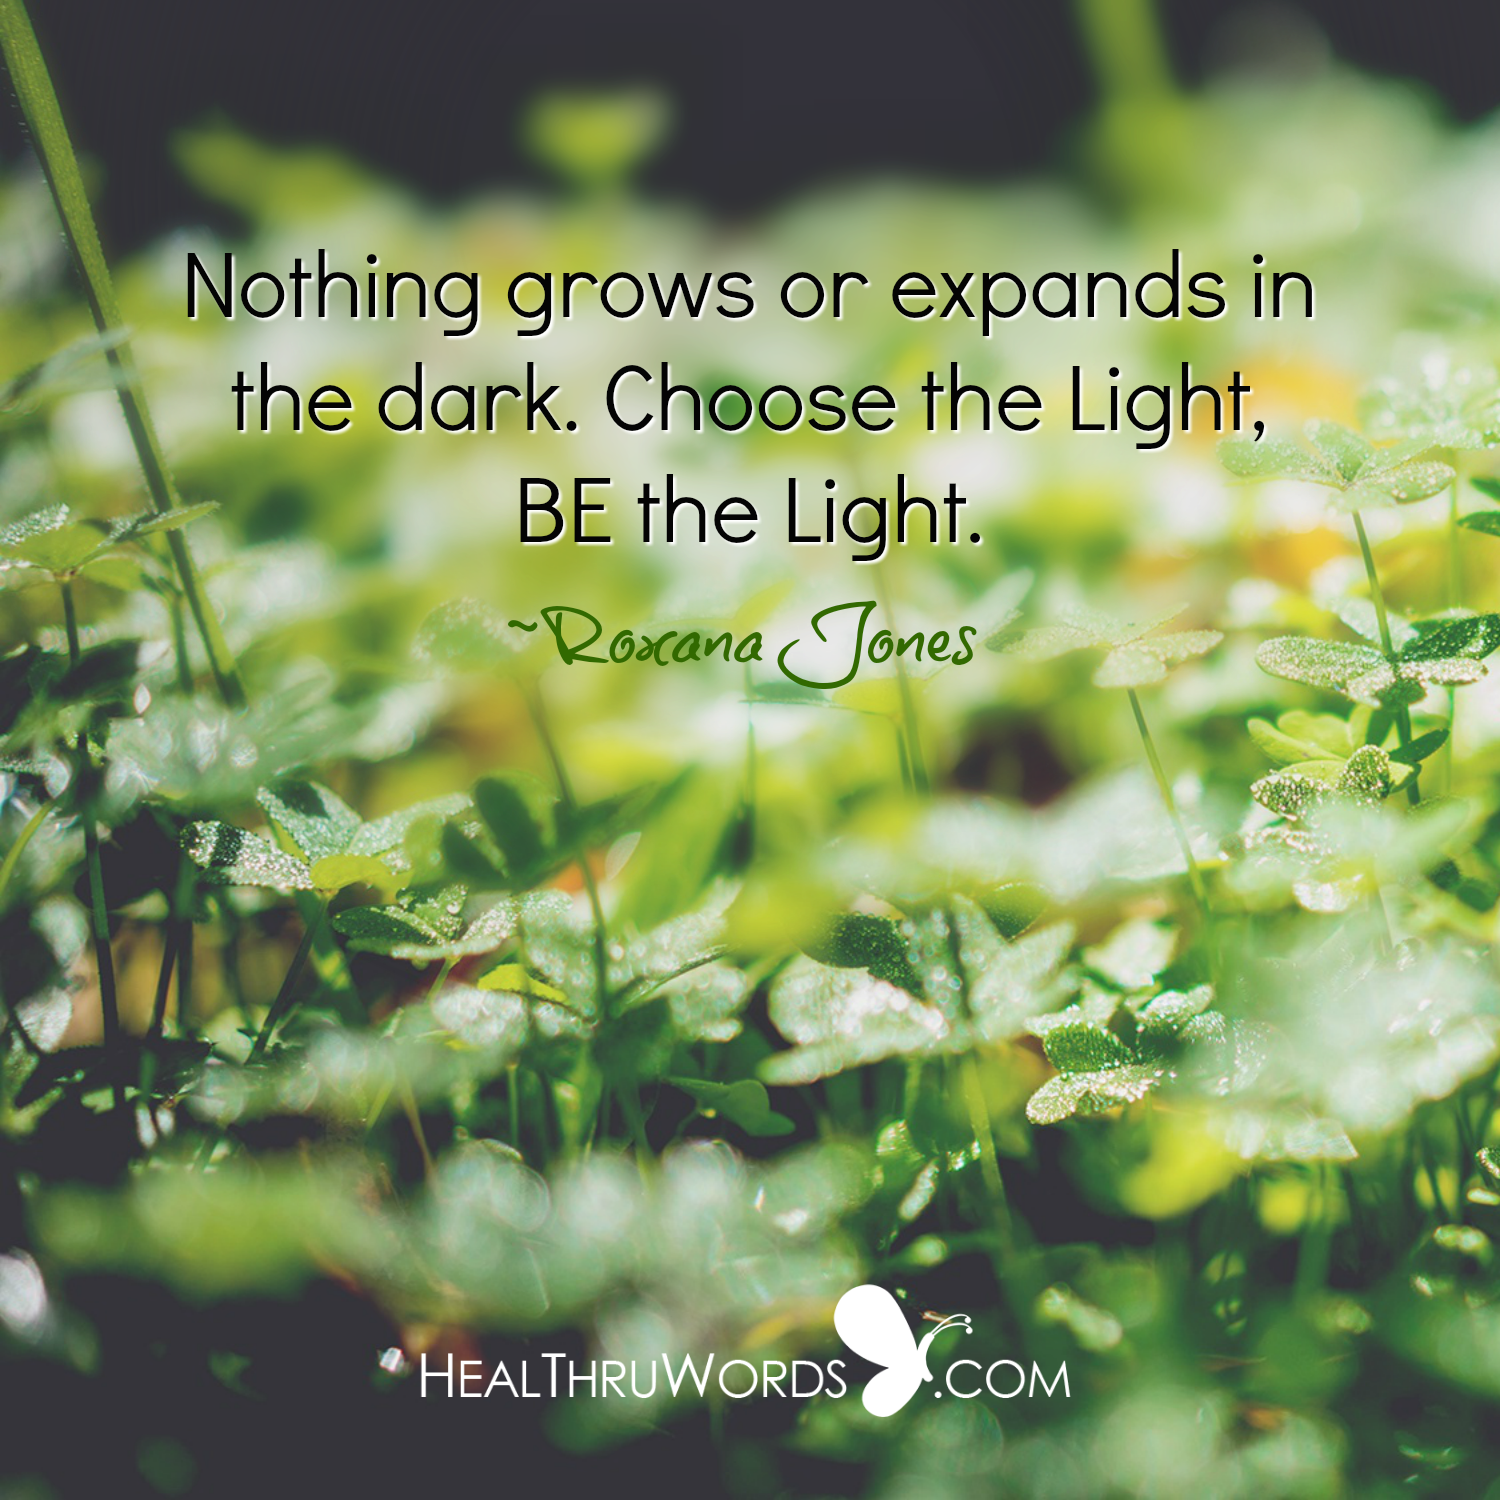 Inspirational Image: Let There Be Light